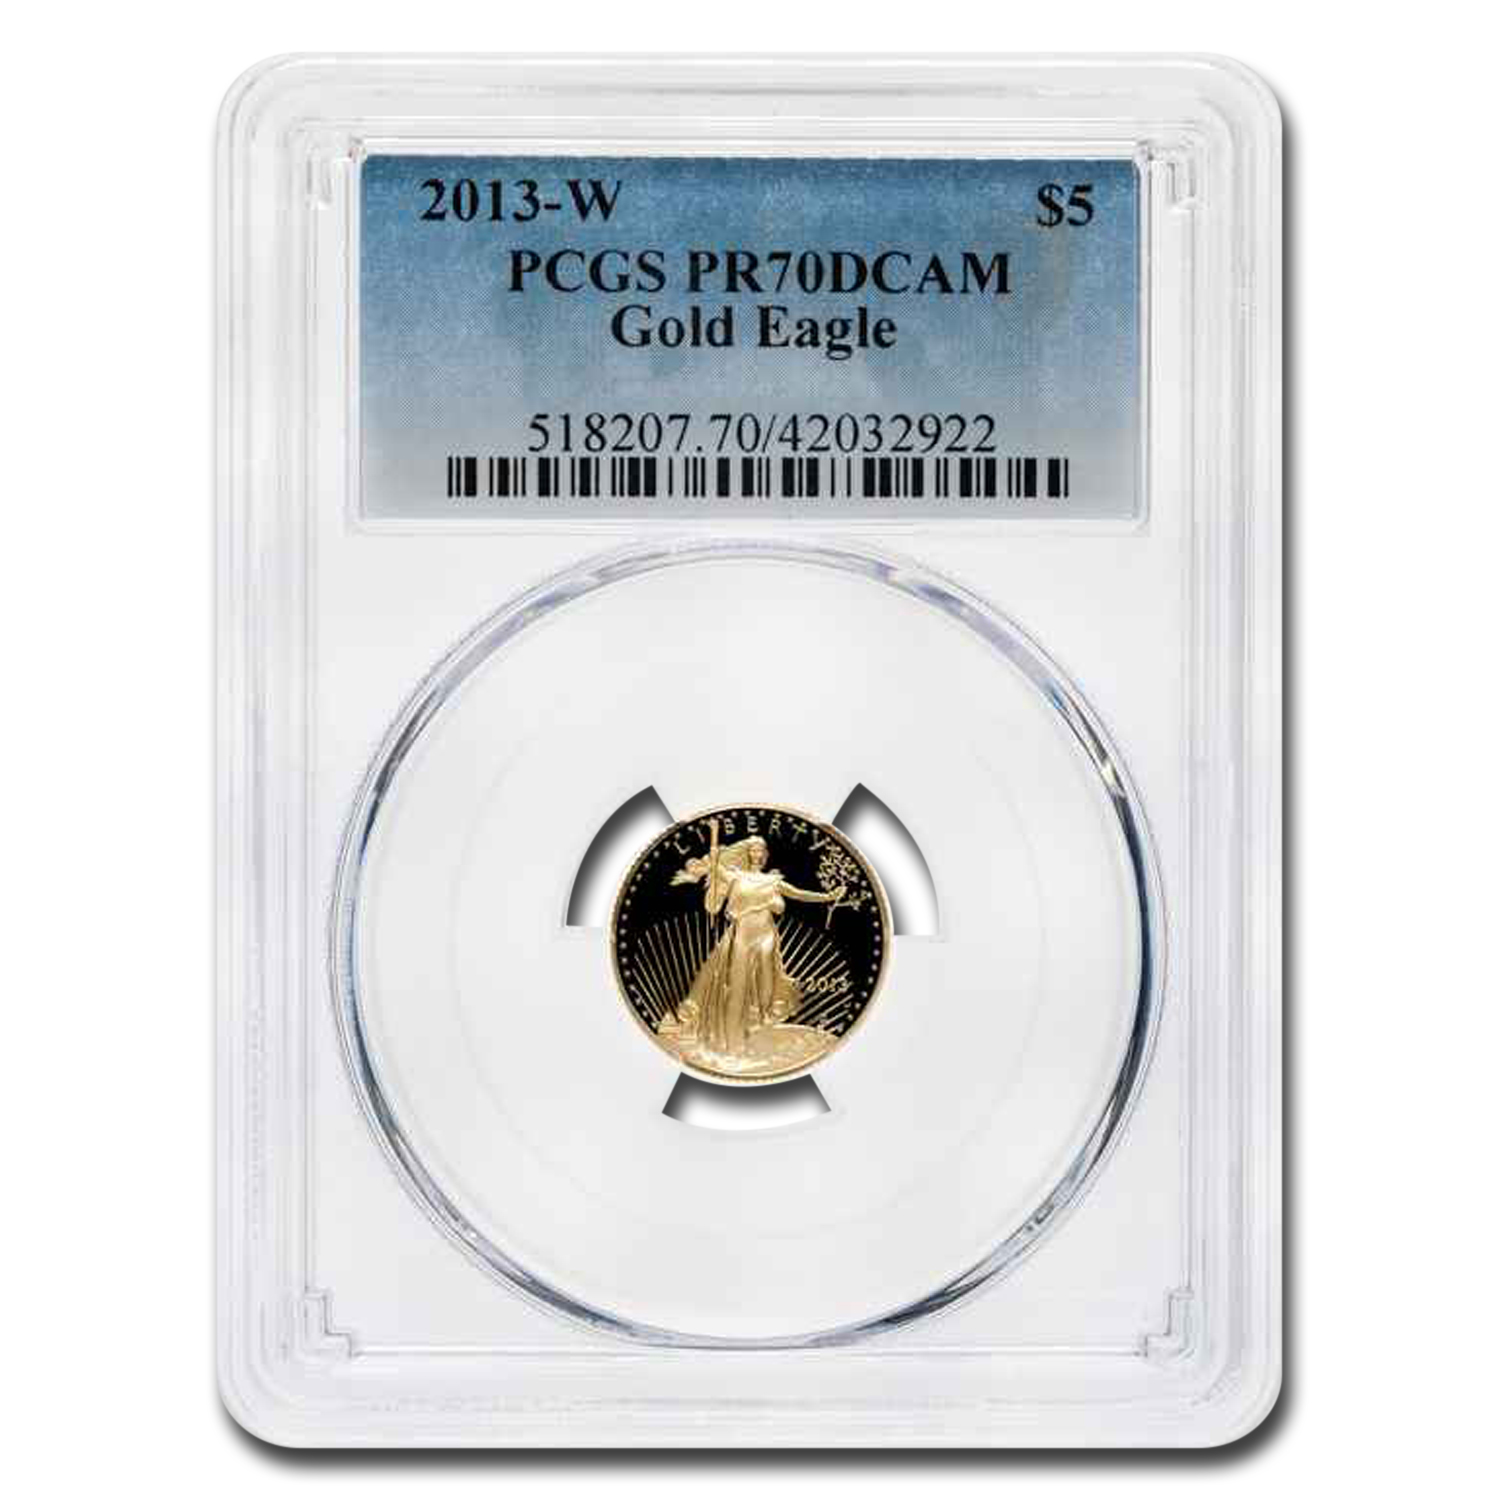 2013-W 1/10 oz Proof Gold American Eagle PR-70 PCGS